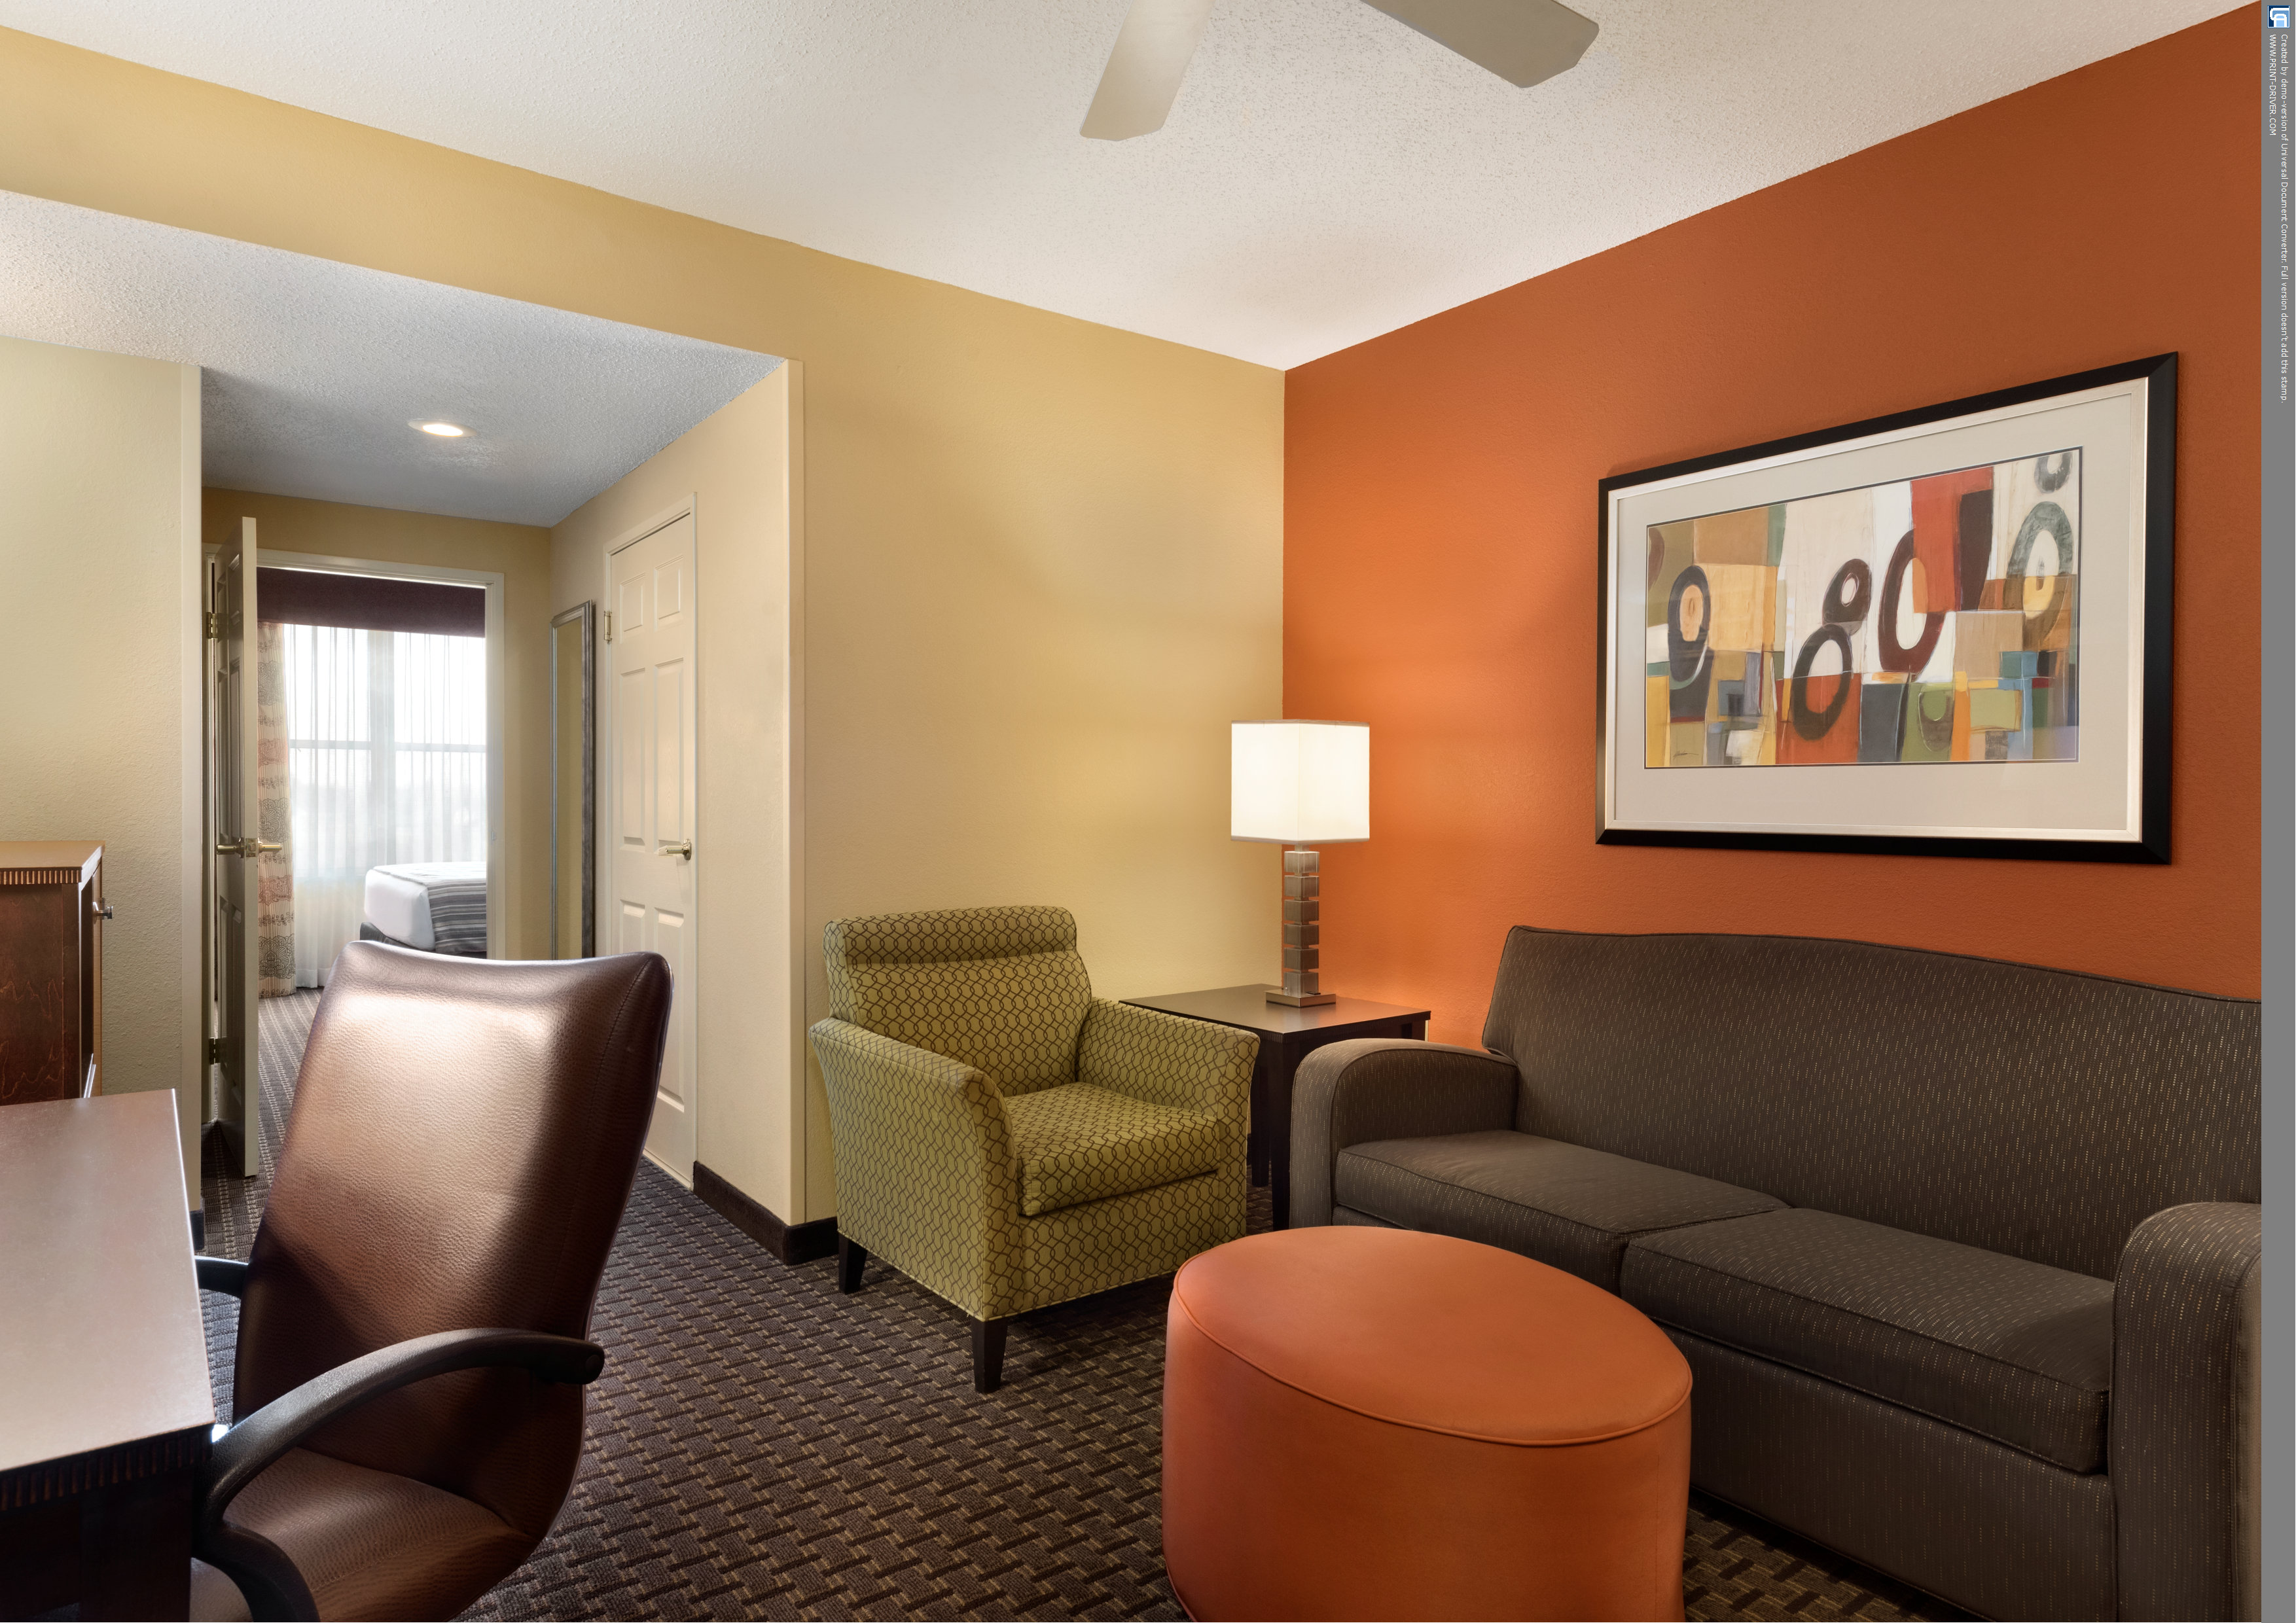 Country Inn & Suites by Radisson, Evansville, IN image 4